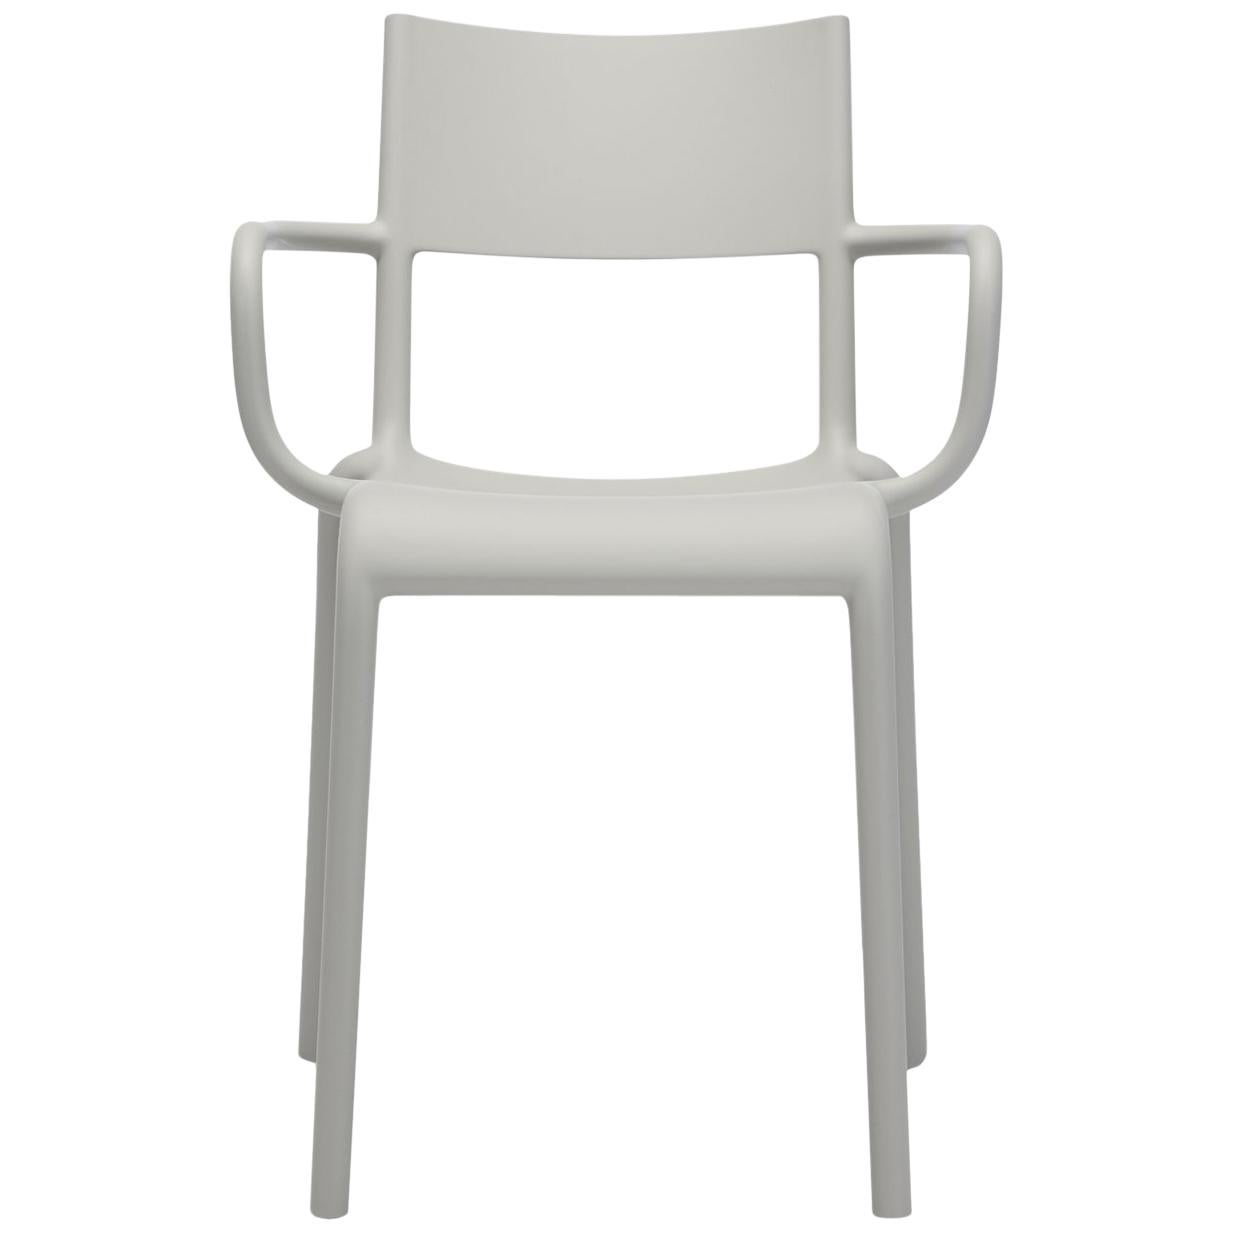 Set of 2 Kartell Generic A Chairs in Grey by Philippe Starck